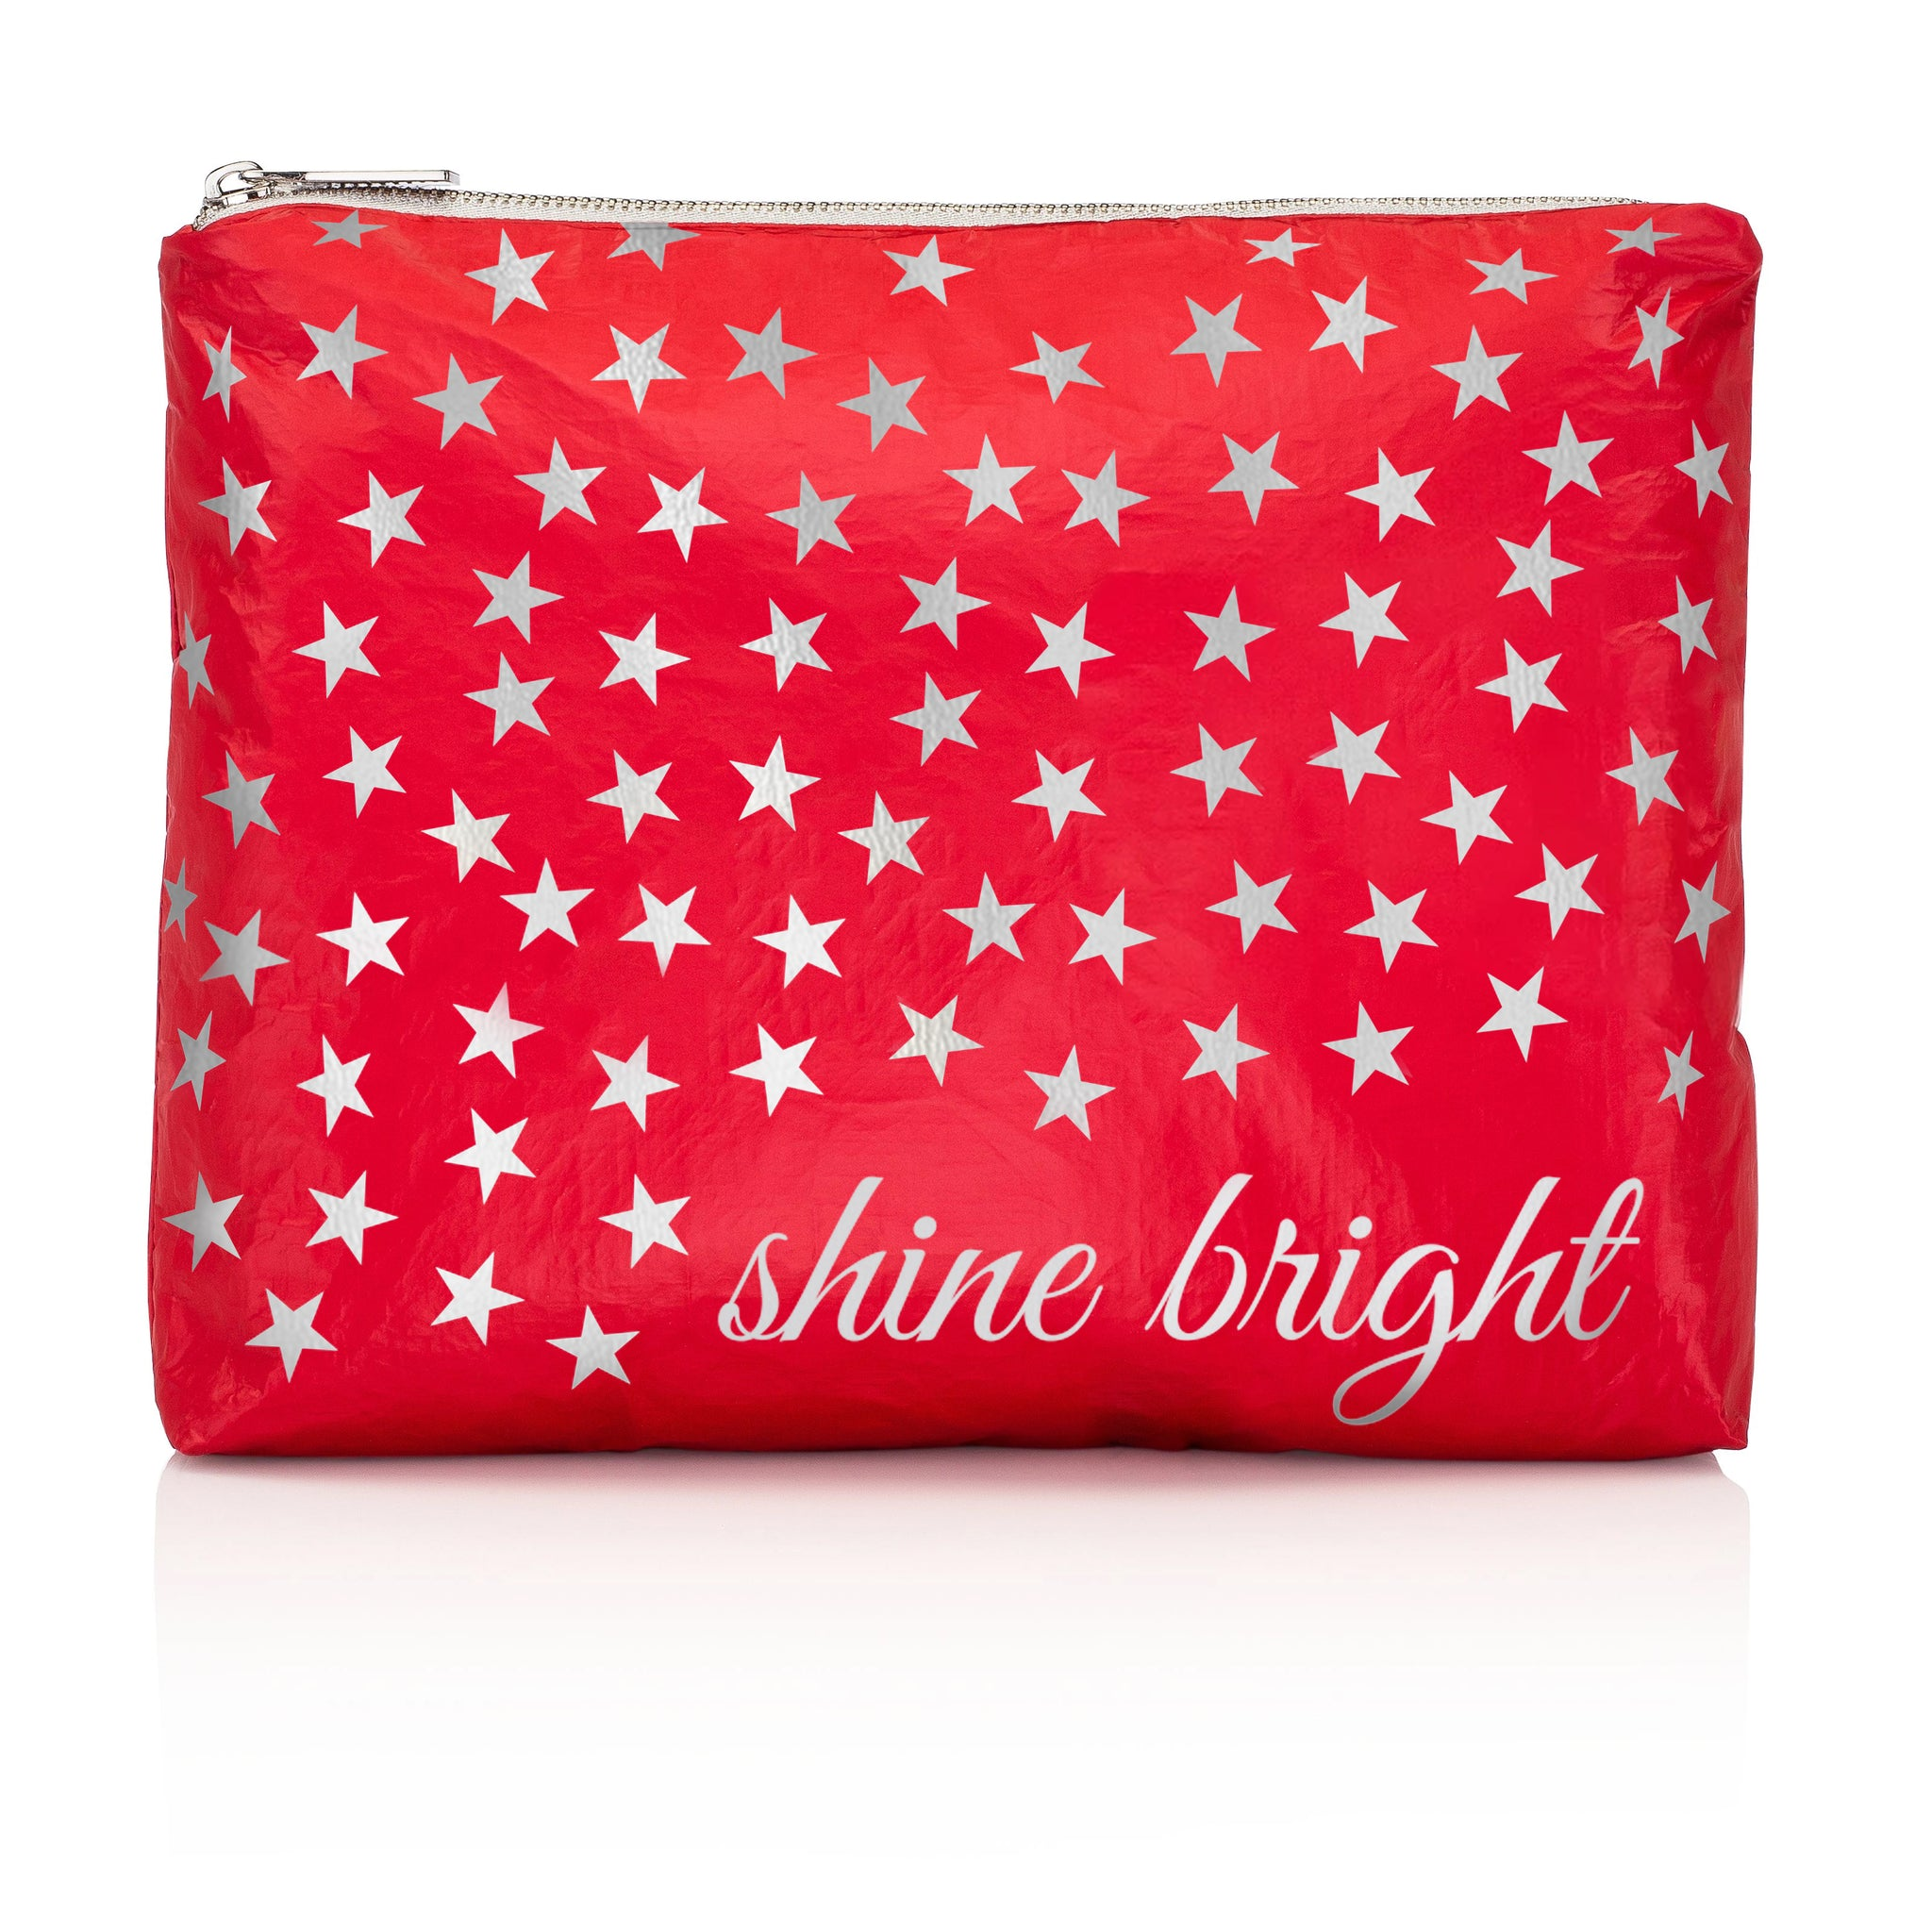 "Makeup Pouch - Travel Pack - Medium Pack - Chili Pepper Red with Metallic Silver ""Shine Bright"" - Metallic Silver Stars"